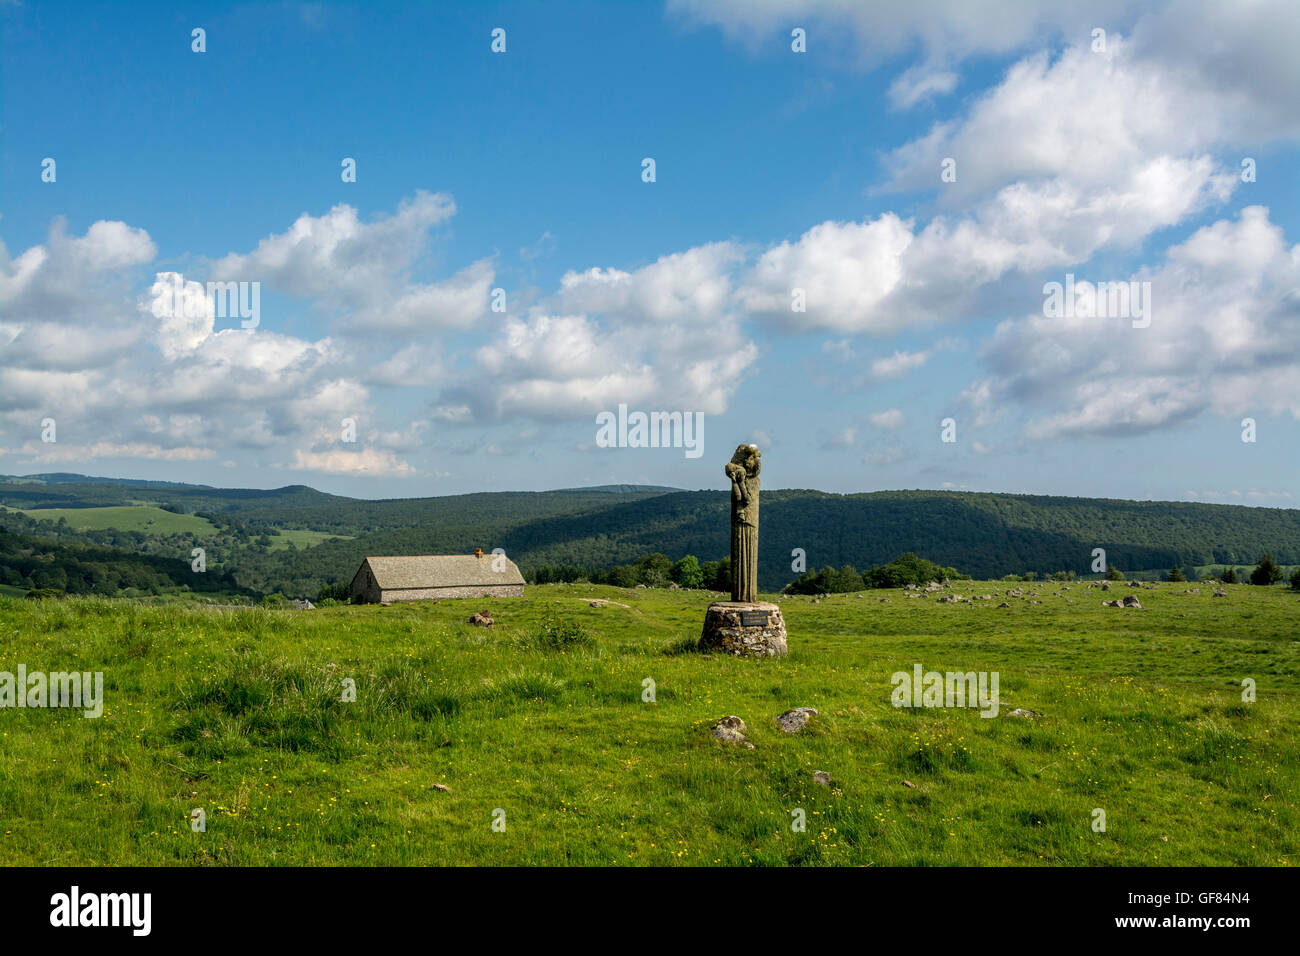 Statue of ND of gentians near Aubrac village, Aubrac region, Aveyron, France - Stock Image